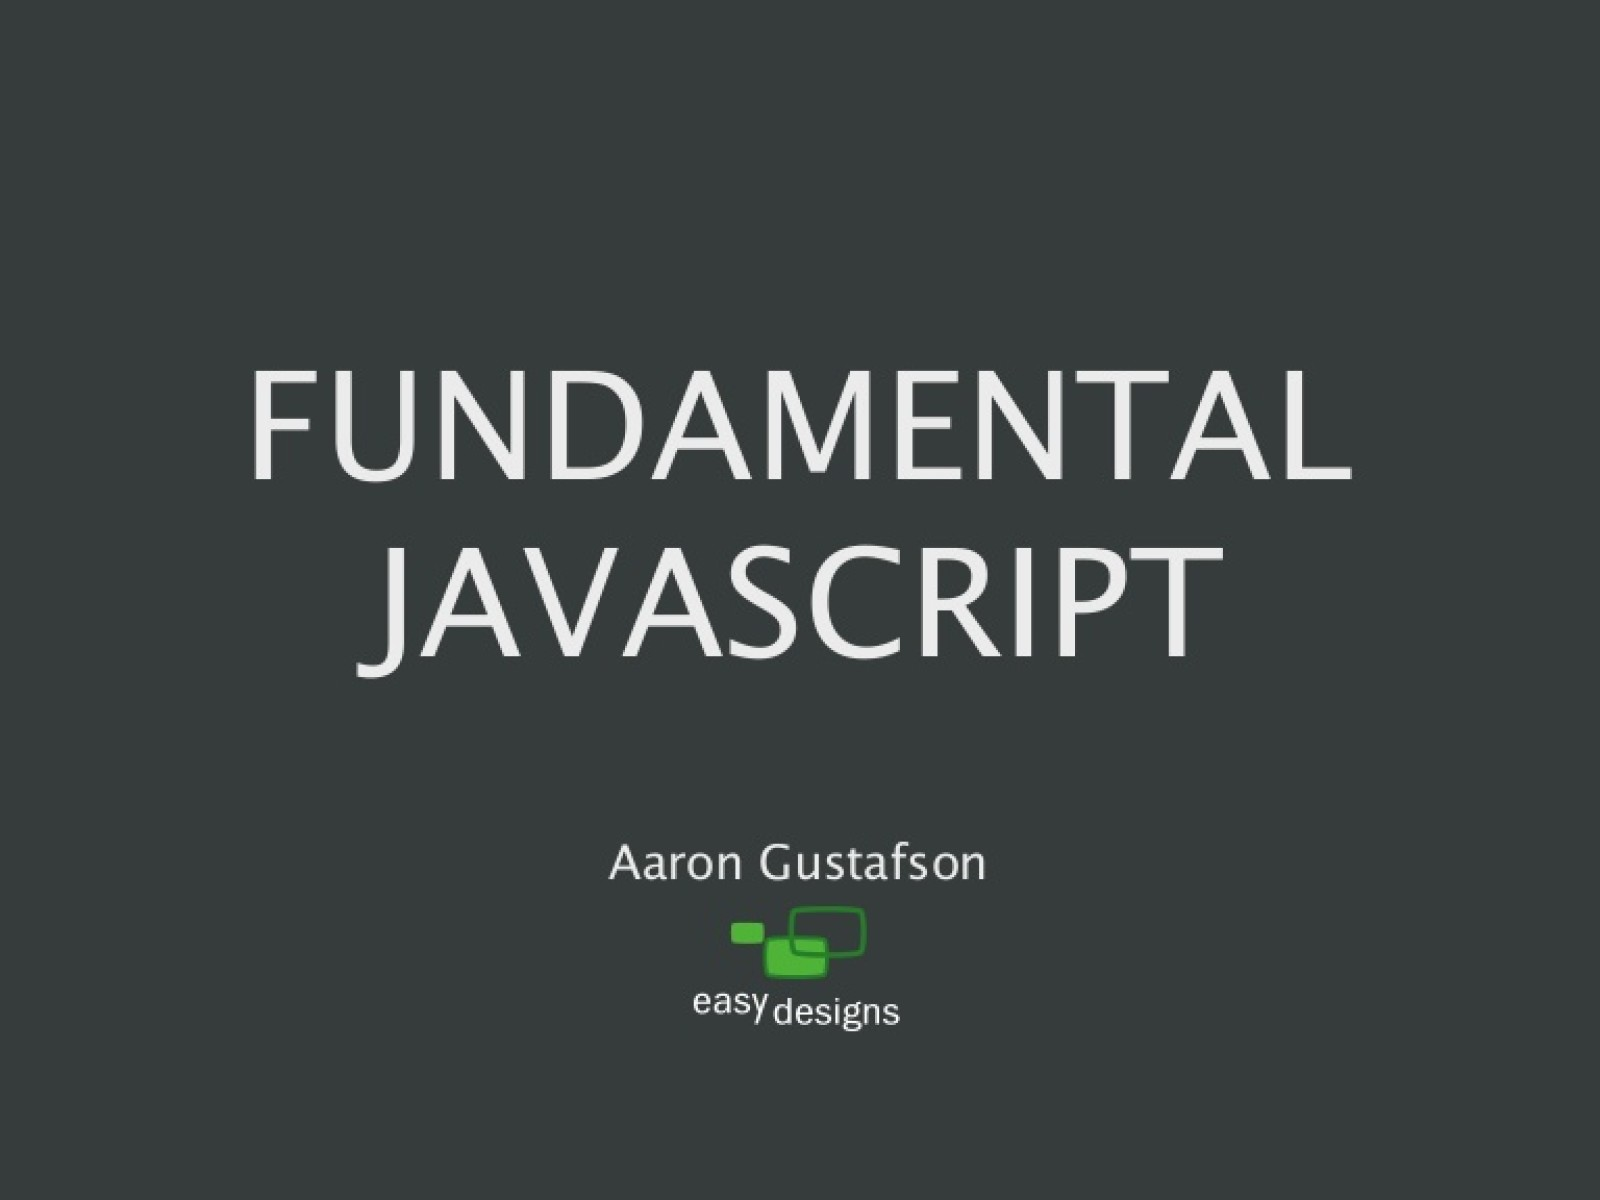 Fundamental JavaScript